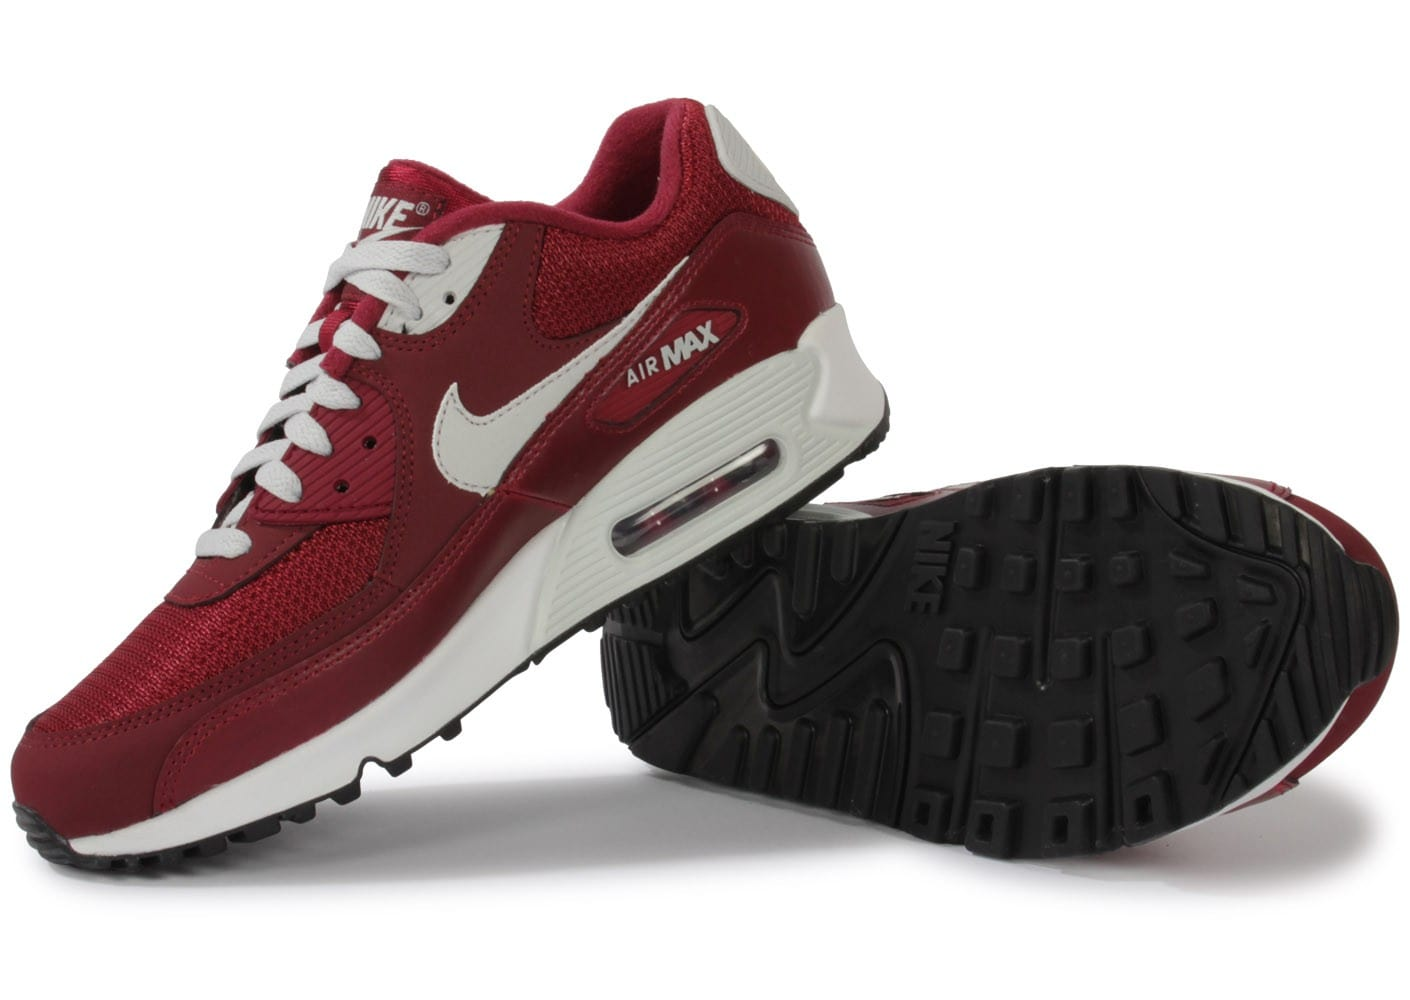 nike air max mvp - 7248-chaussures-nike-air-max-90-essential-team-red-vue-dessous-semelle_1.jpg